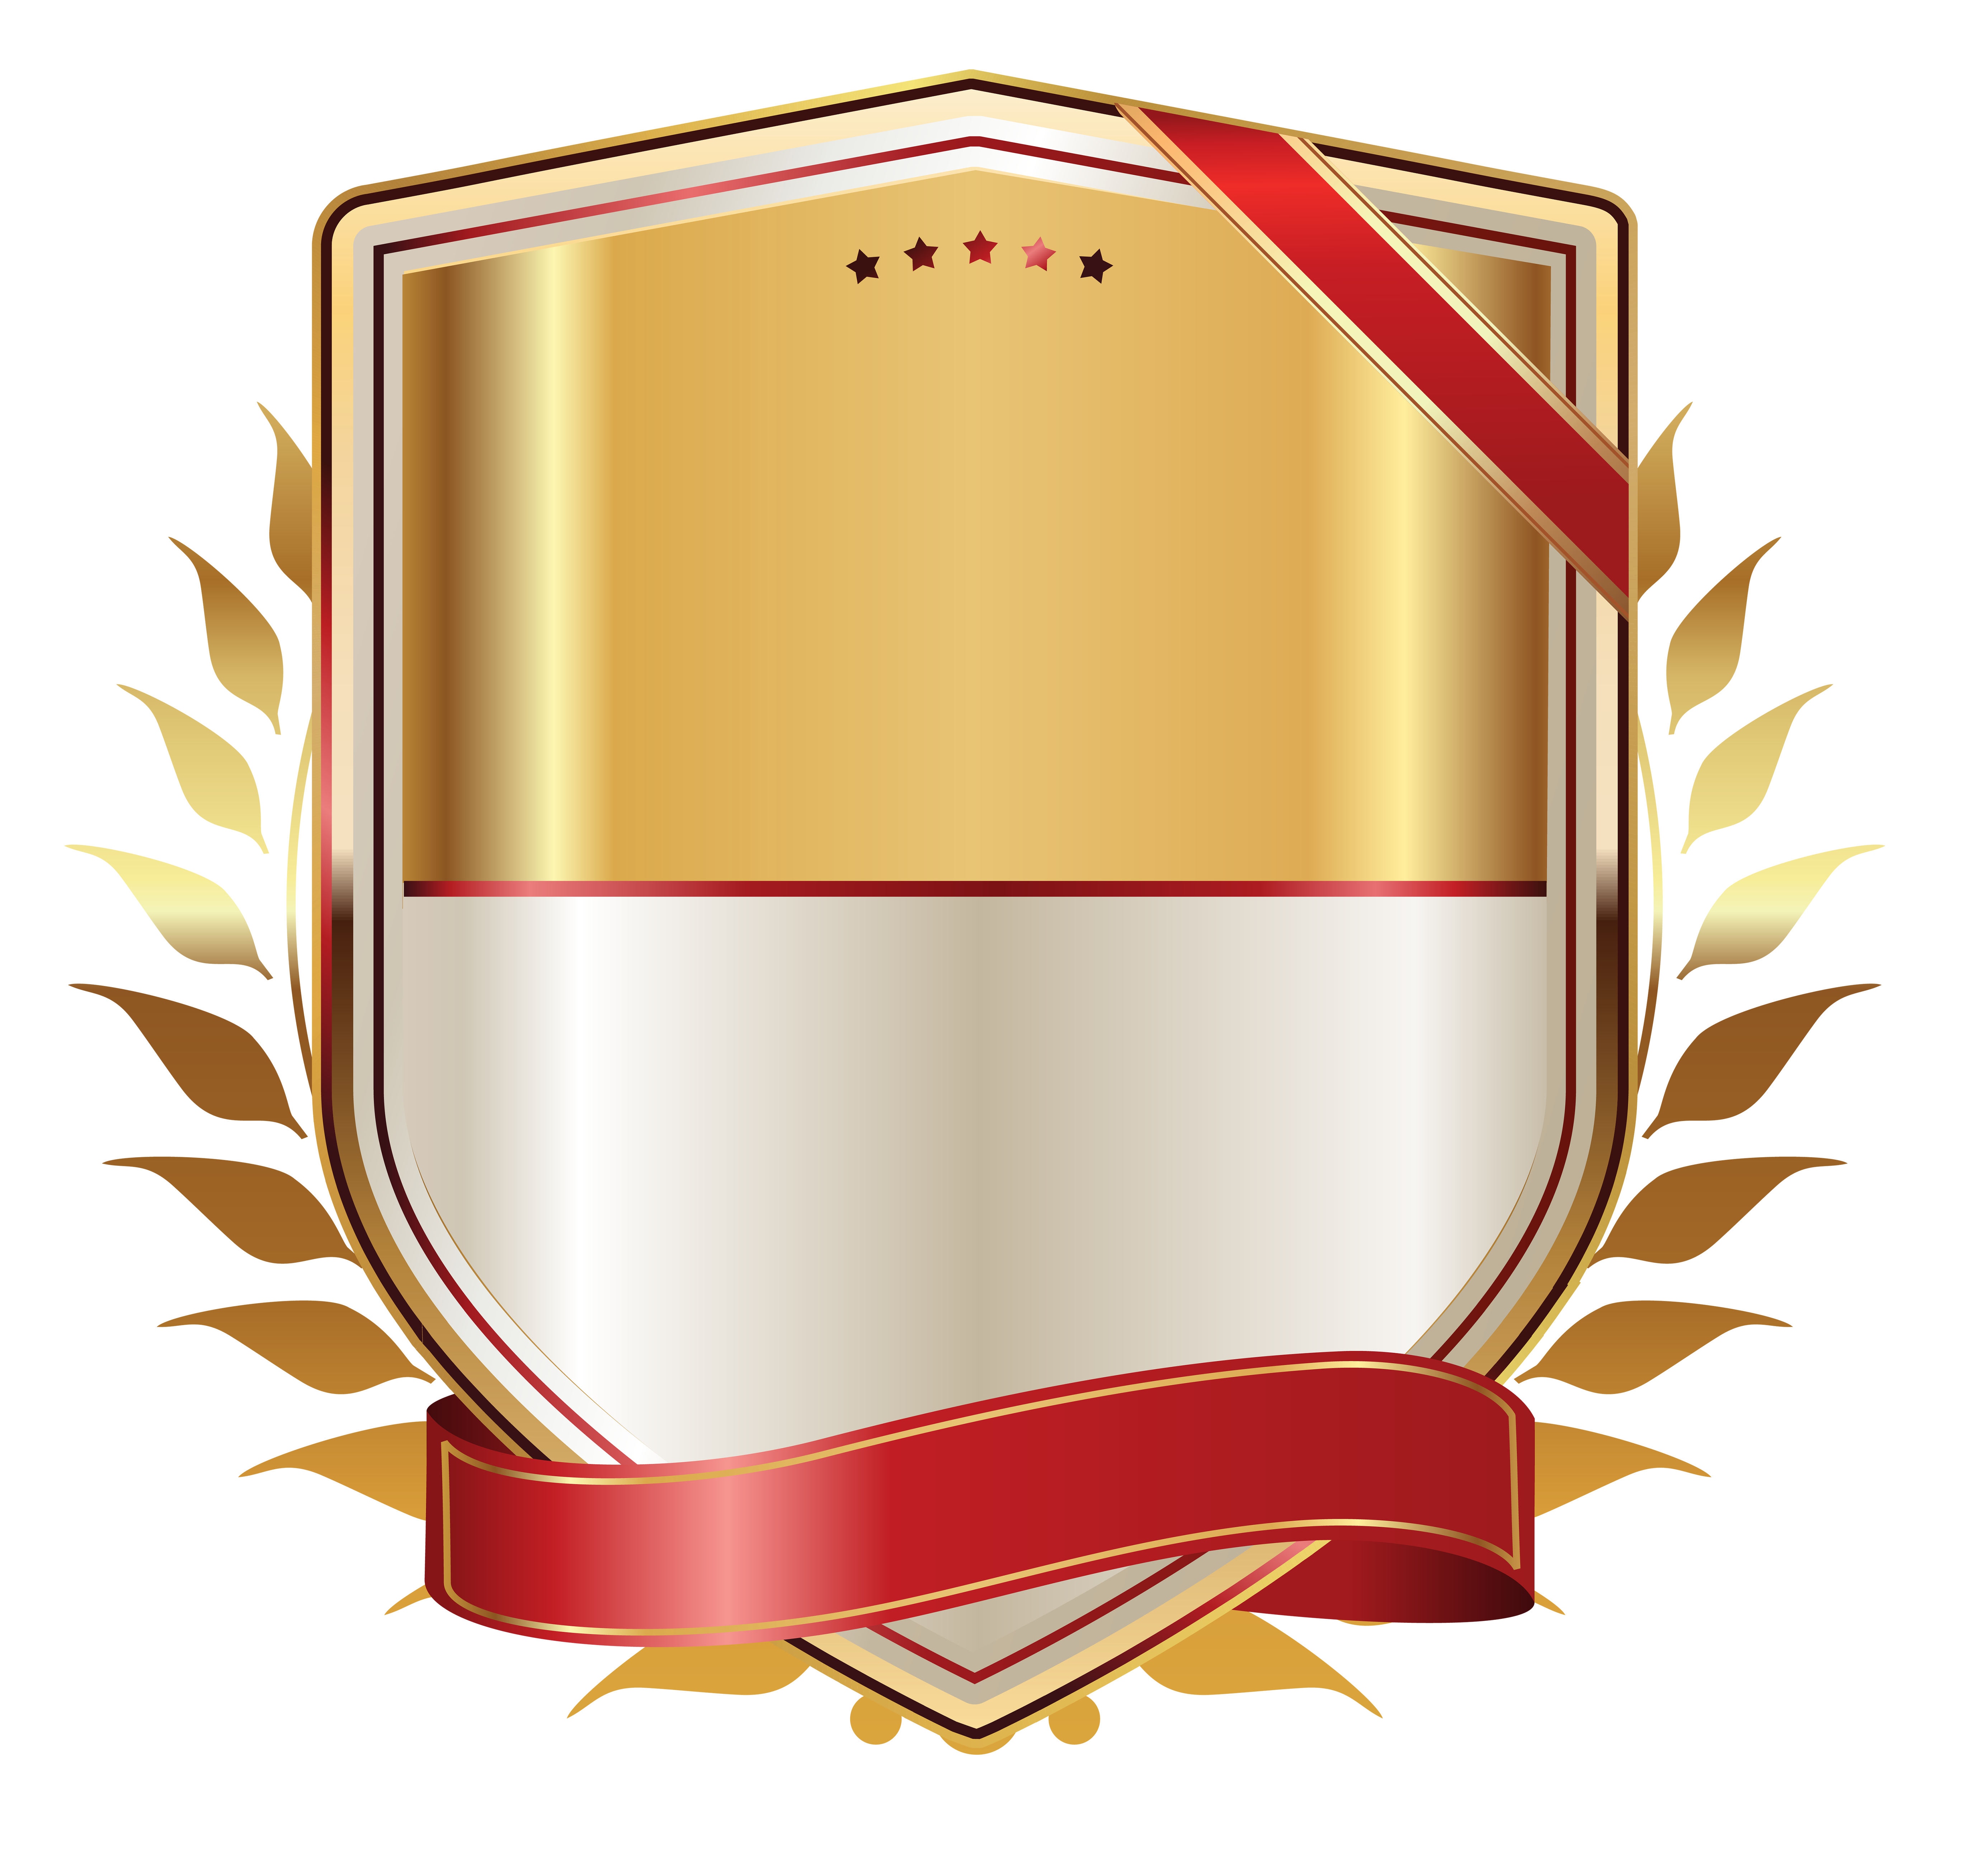 Golden label with gold ribbon png clipart image vectores for Transparent top design